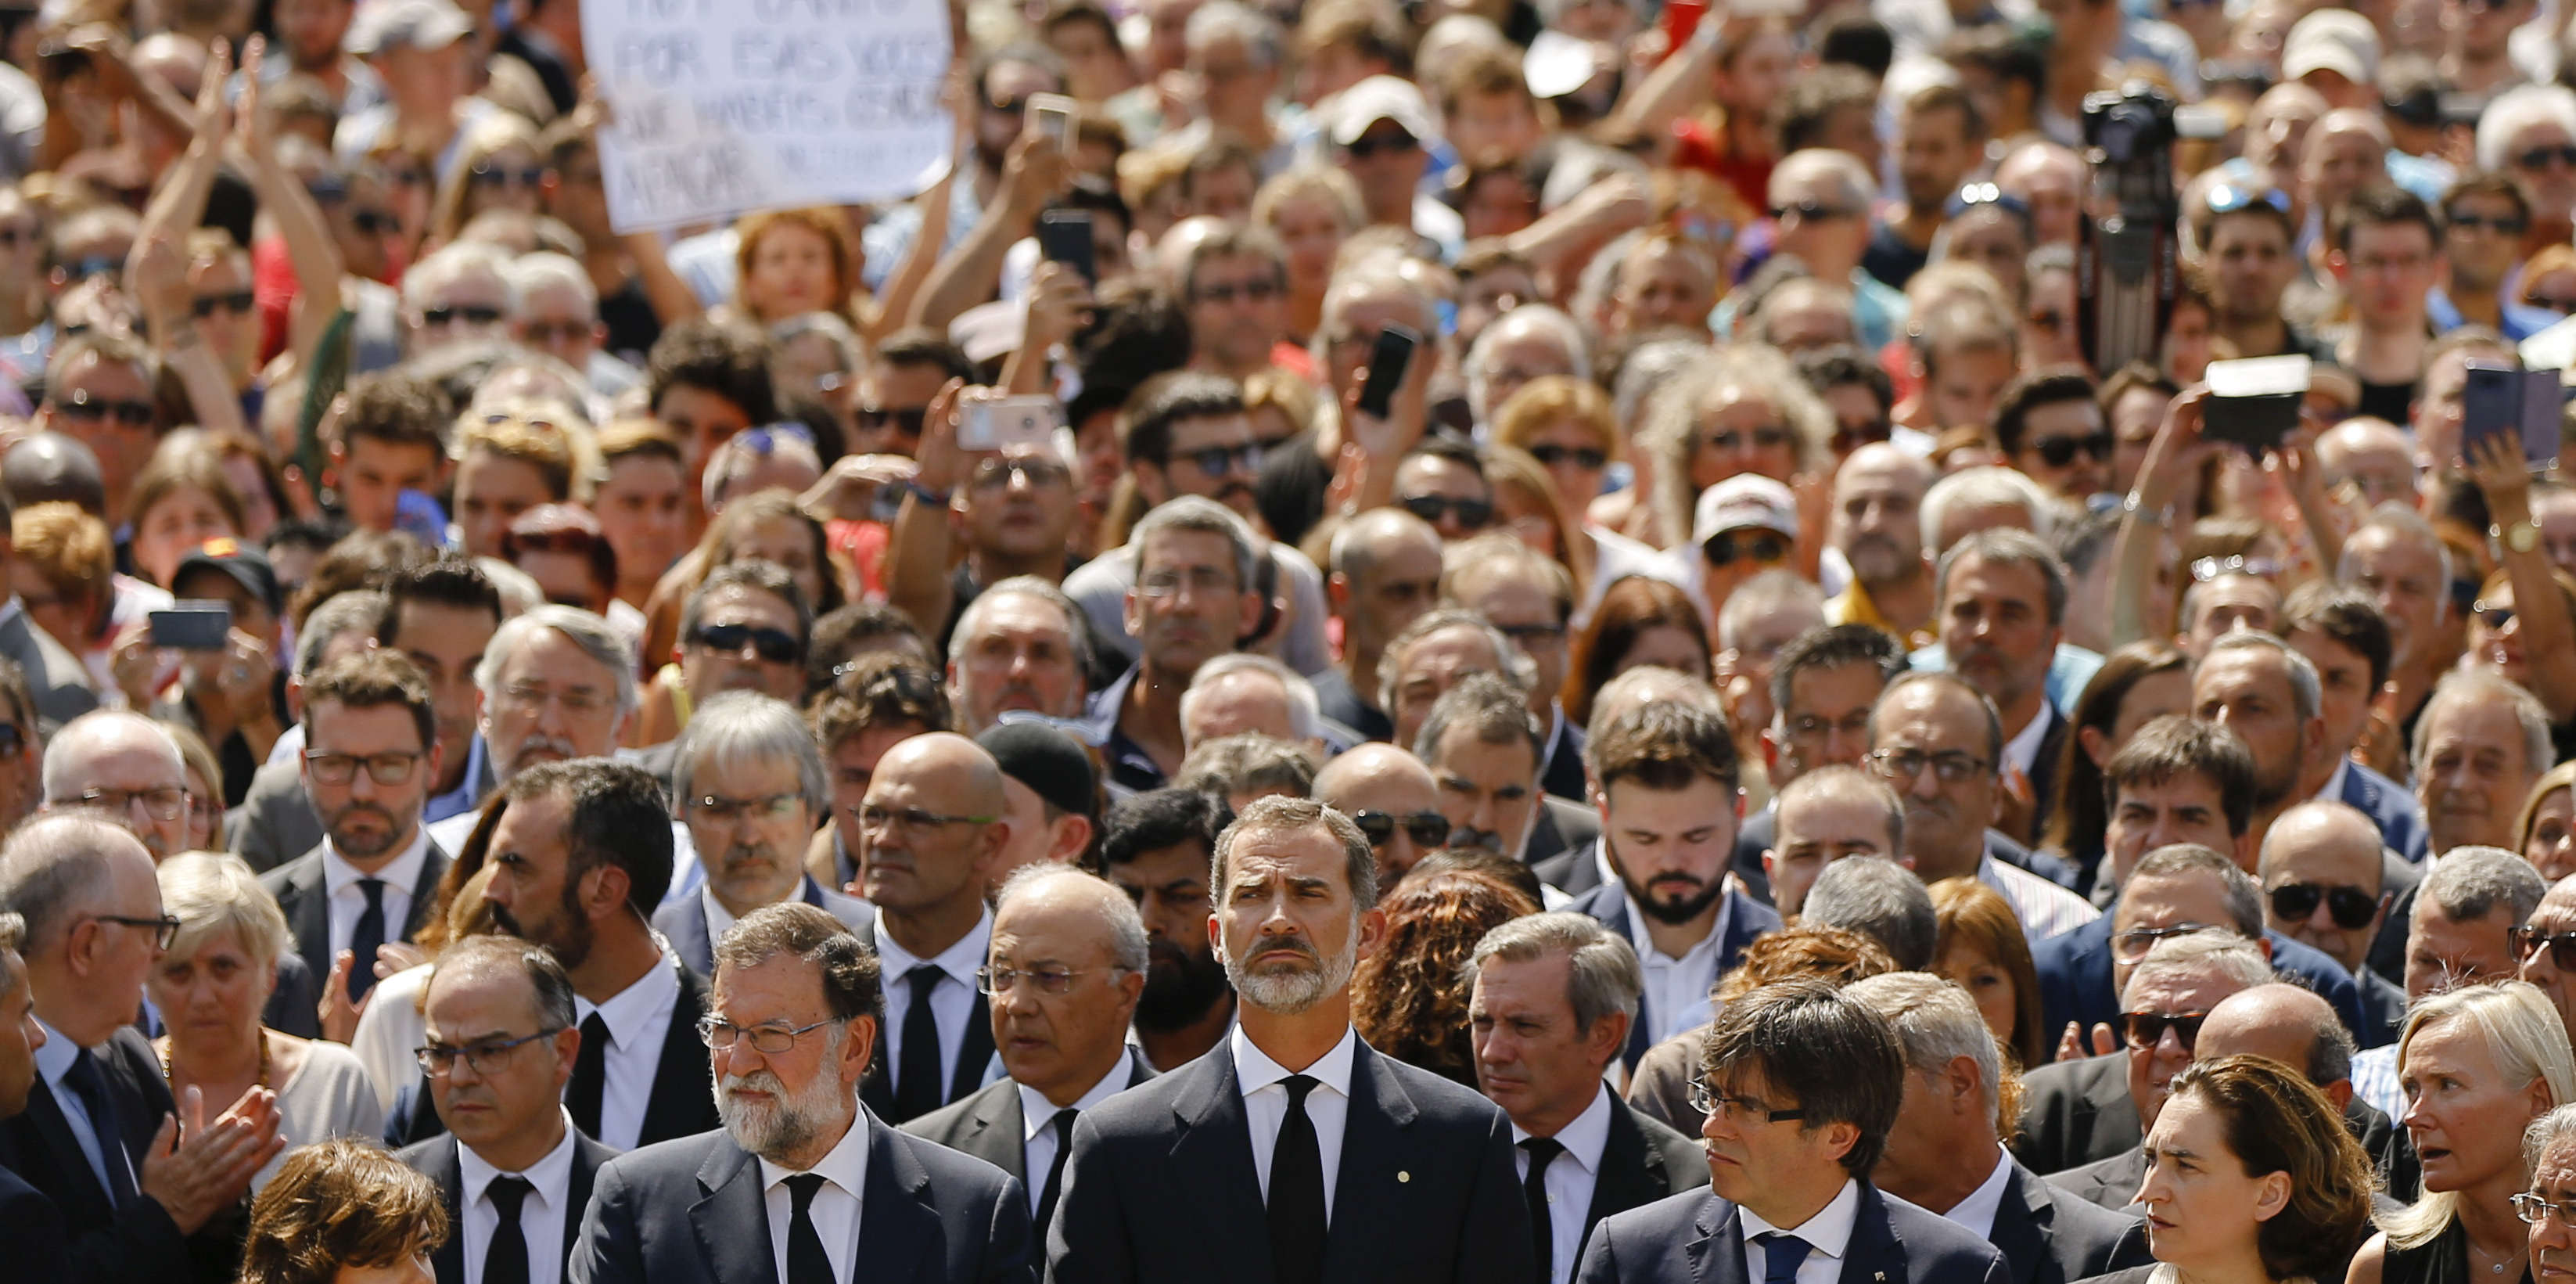 King Felipe of Spain, center, Prime Minister Mariano Rajoy, center left, and and Catalonia regional President Carles Puigdemont, center right, join people observing a minute of silence in memory of the terrorist attacks victims in Las Ramblas, Barcelona, Spain, Friday, Aug. 18, 2017. Spanish police on Friday shot and killed five people carrying bomb belts who were connected to the Barcelona van attack that killed at least 13, as the manhunt intensified for the perpetrators of Europe's latest rampage claimed by the Islamic State group. (AP Photo/Francisco Seco)